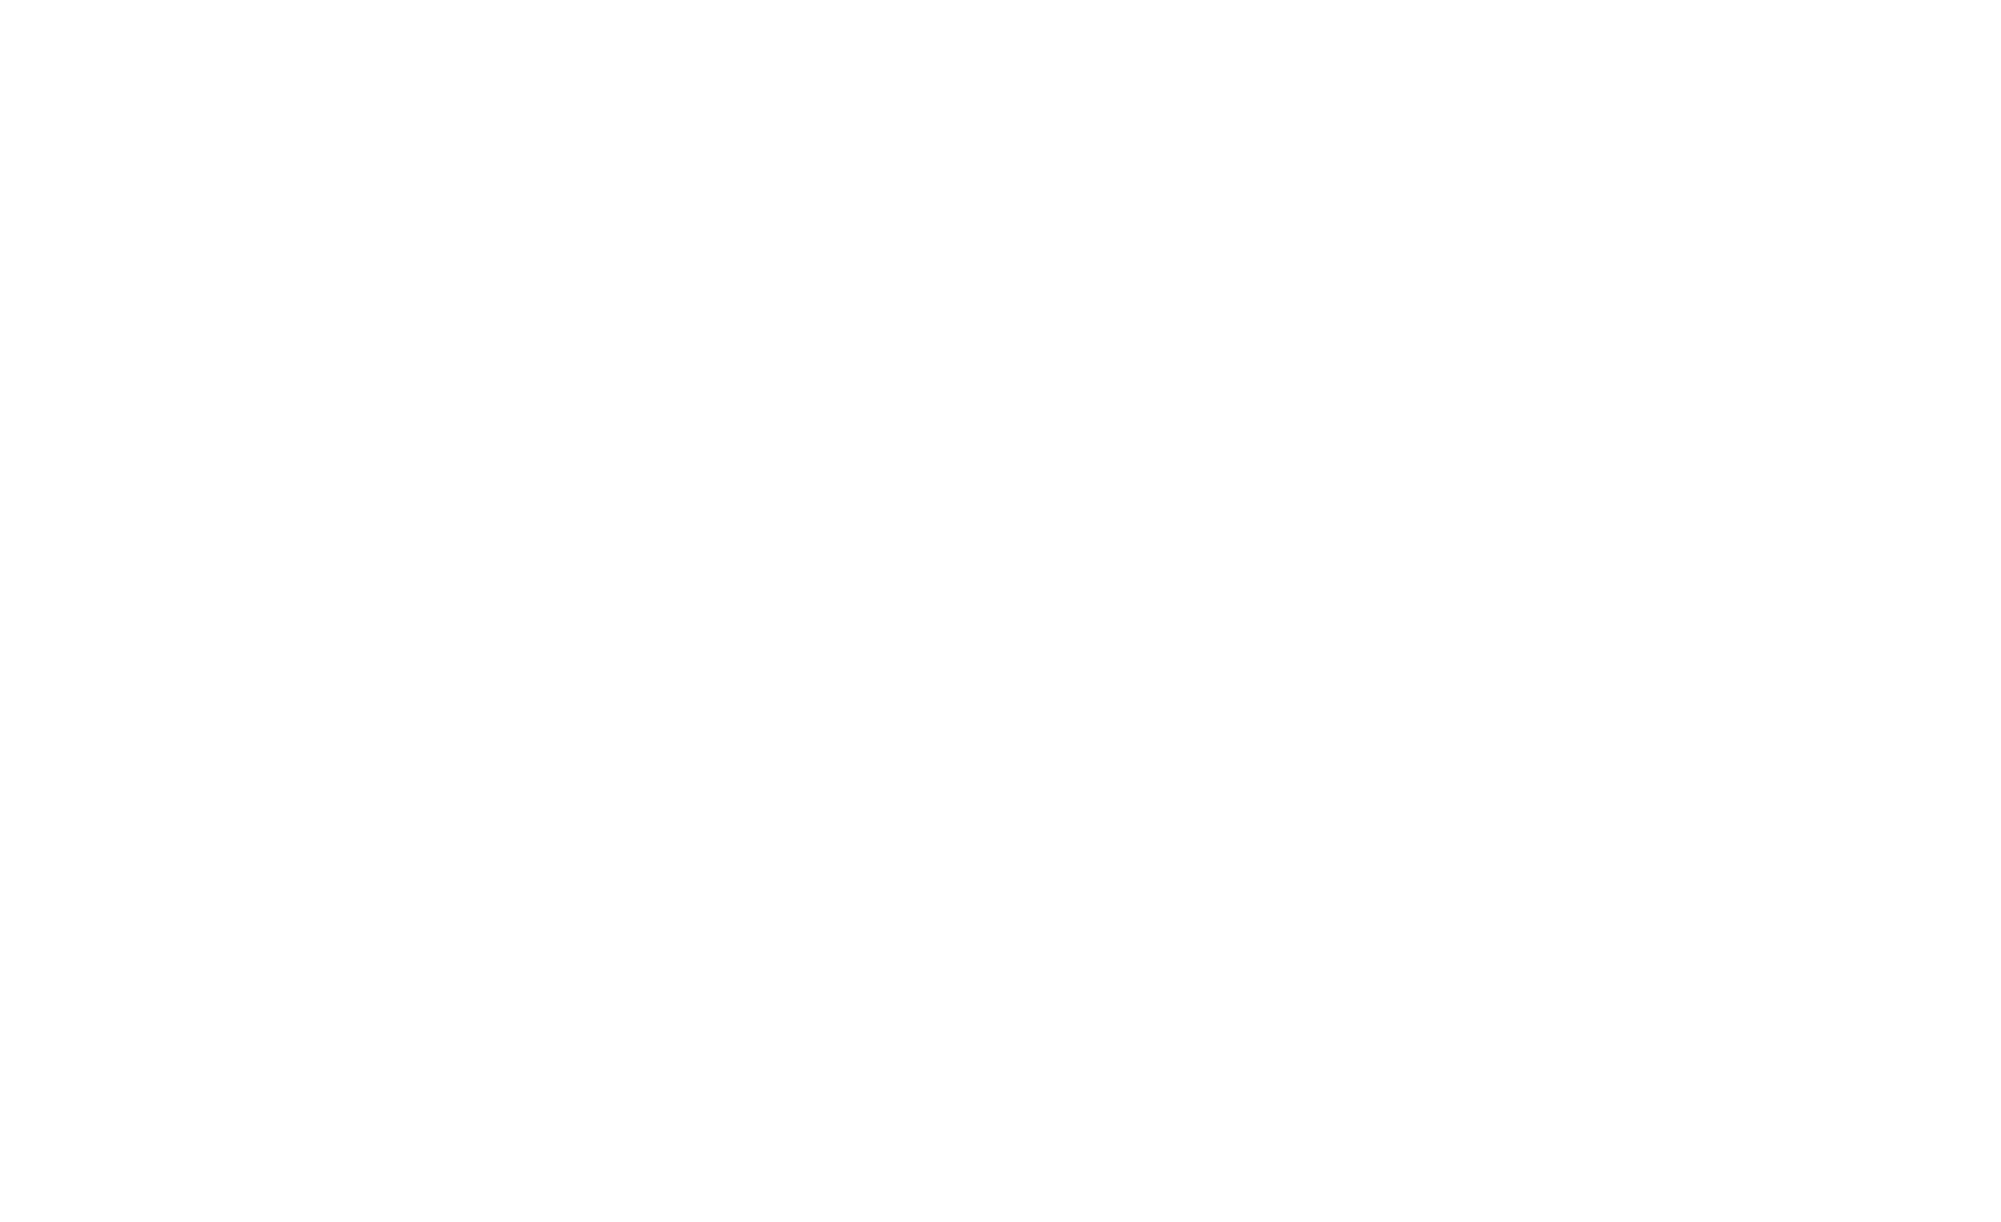 AOT gann courses in India for gann square of nine (9) and